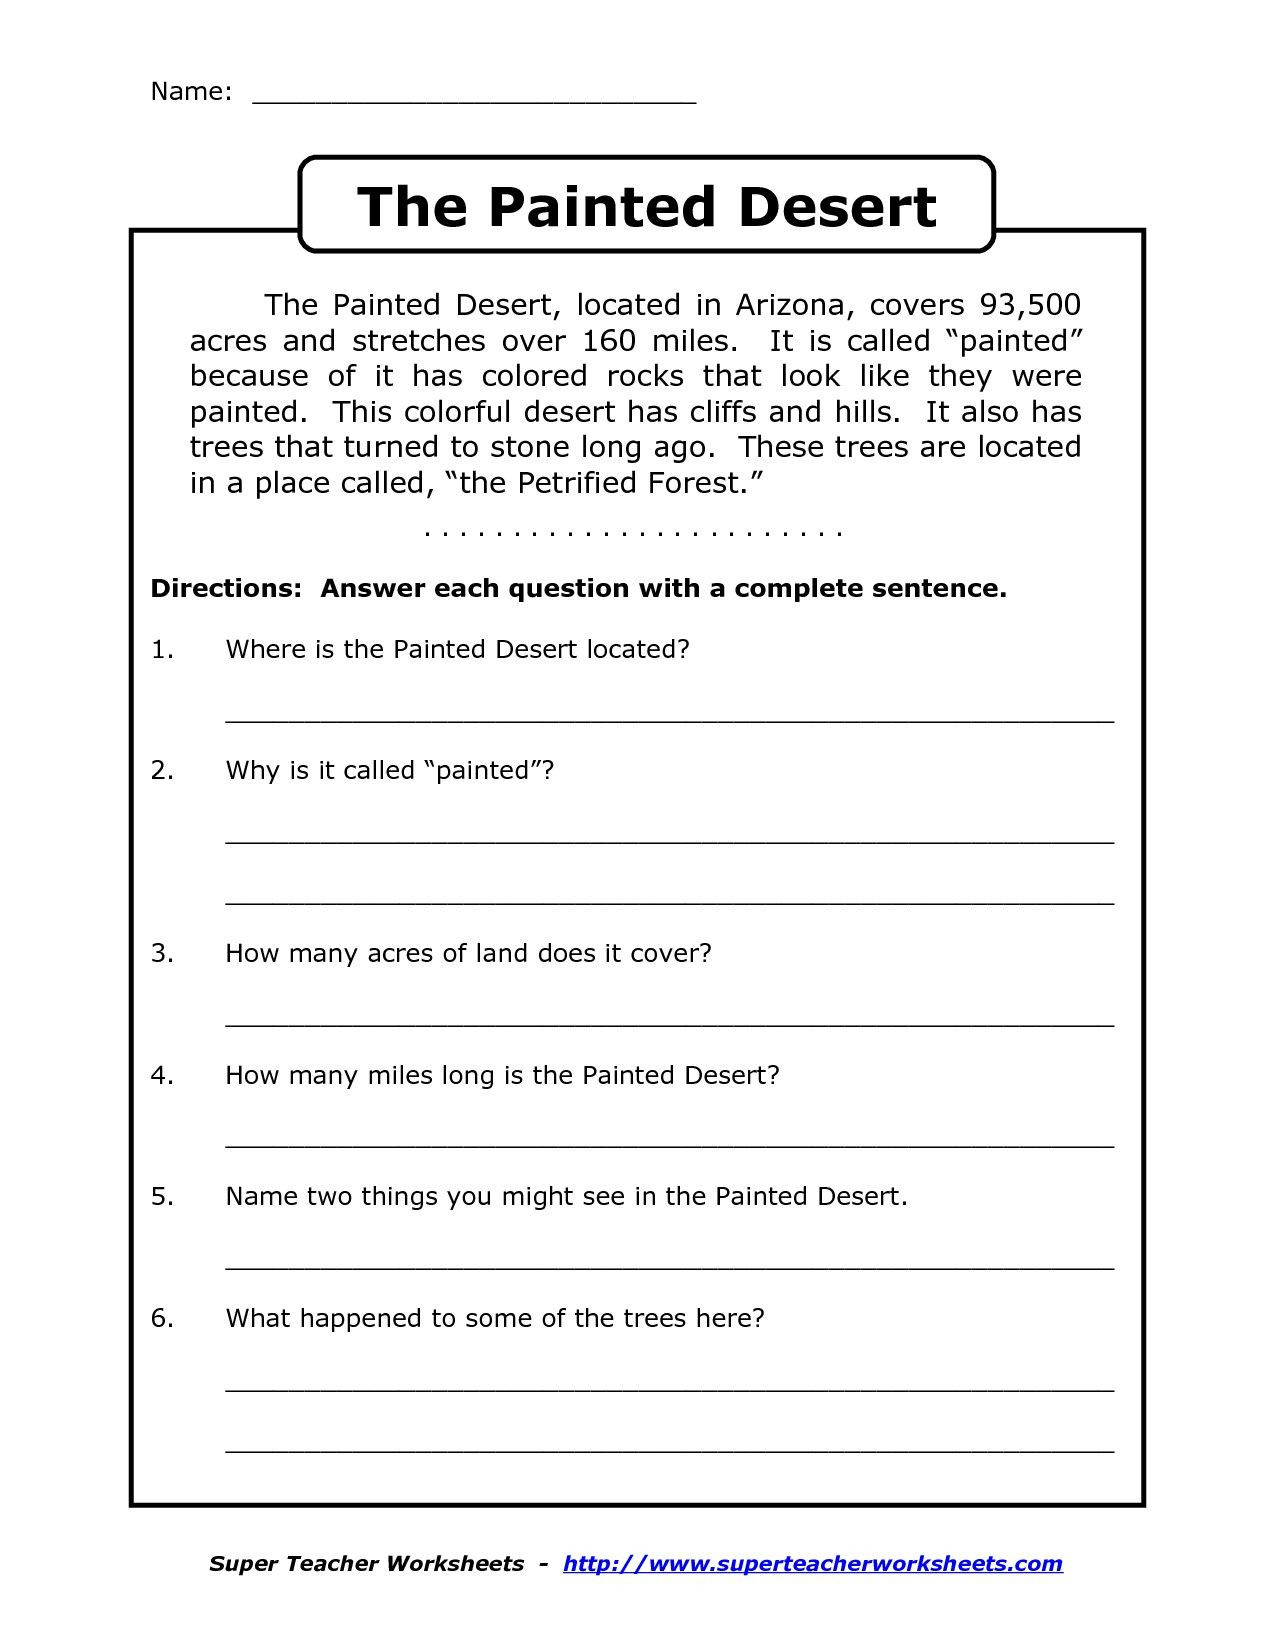 Text Evidence Worksheets 3rd Grade Prehension Worksheet for 1st Grade Y2 P3 the Painted